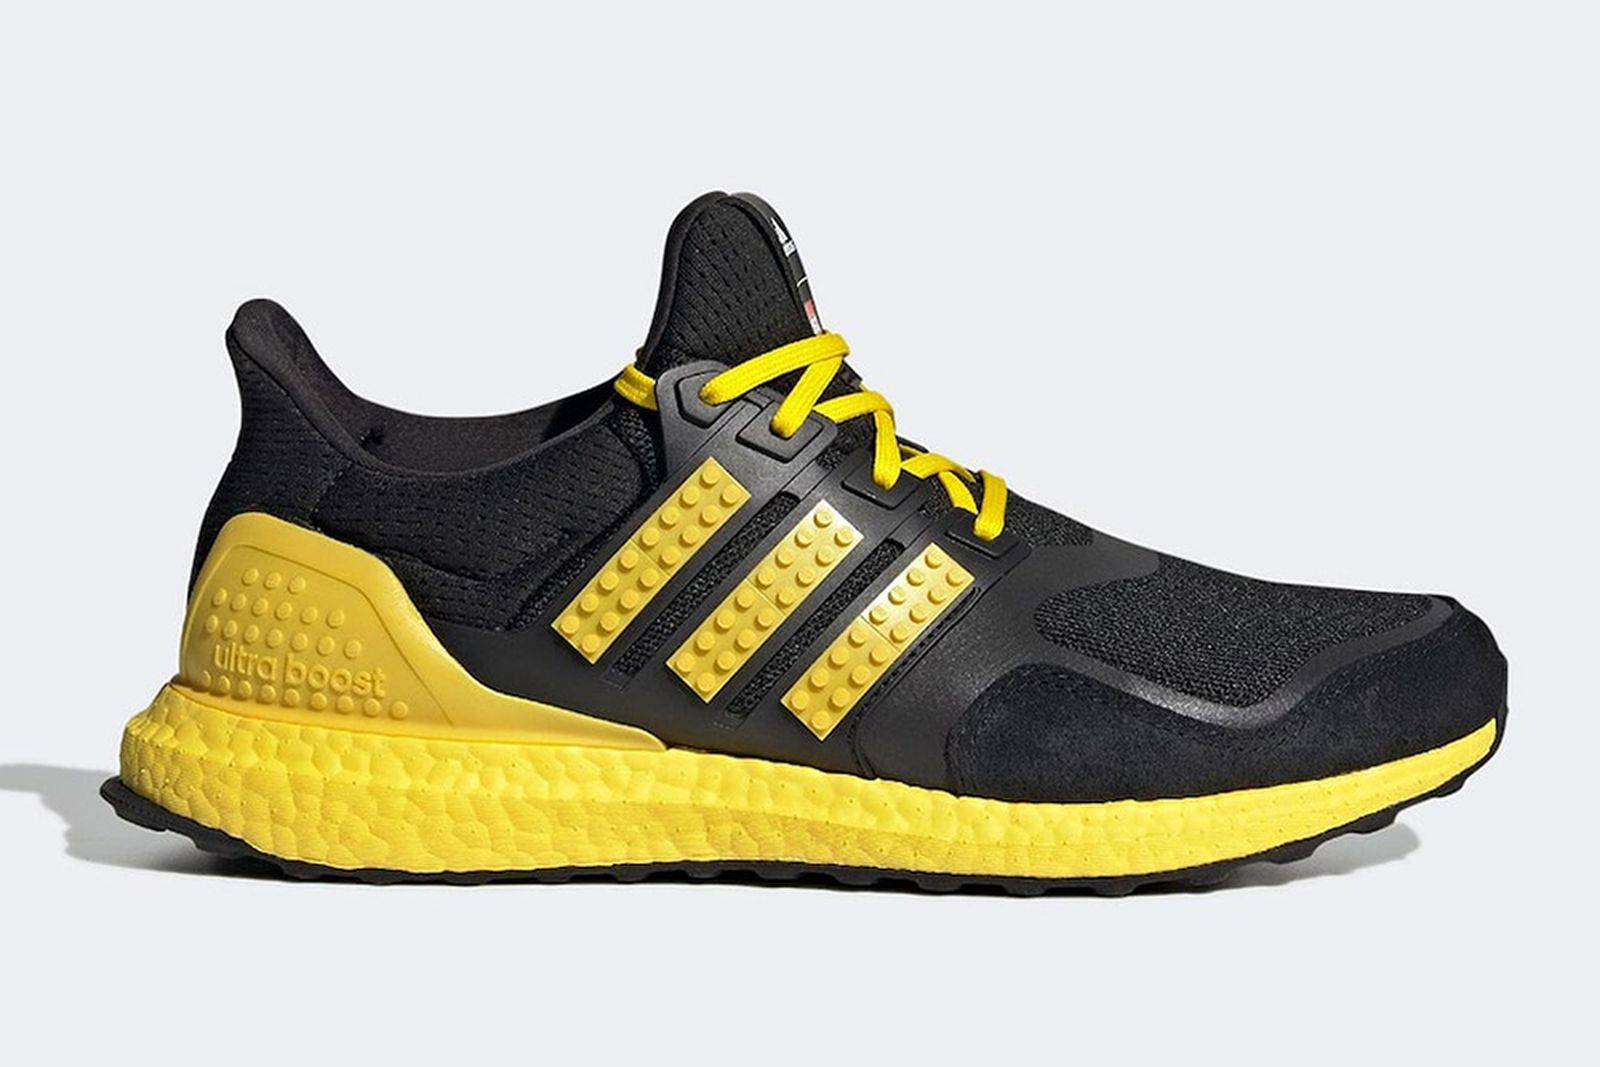 lego-adidas-ultraboost-color-pack-release-date-price-01